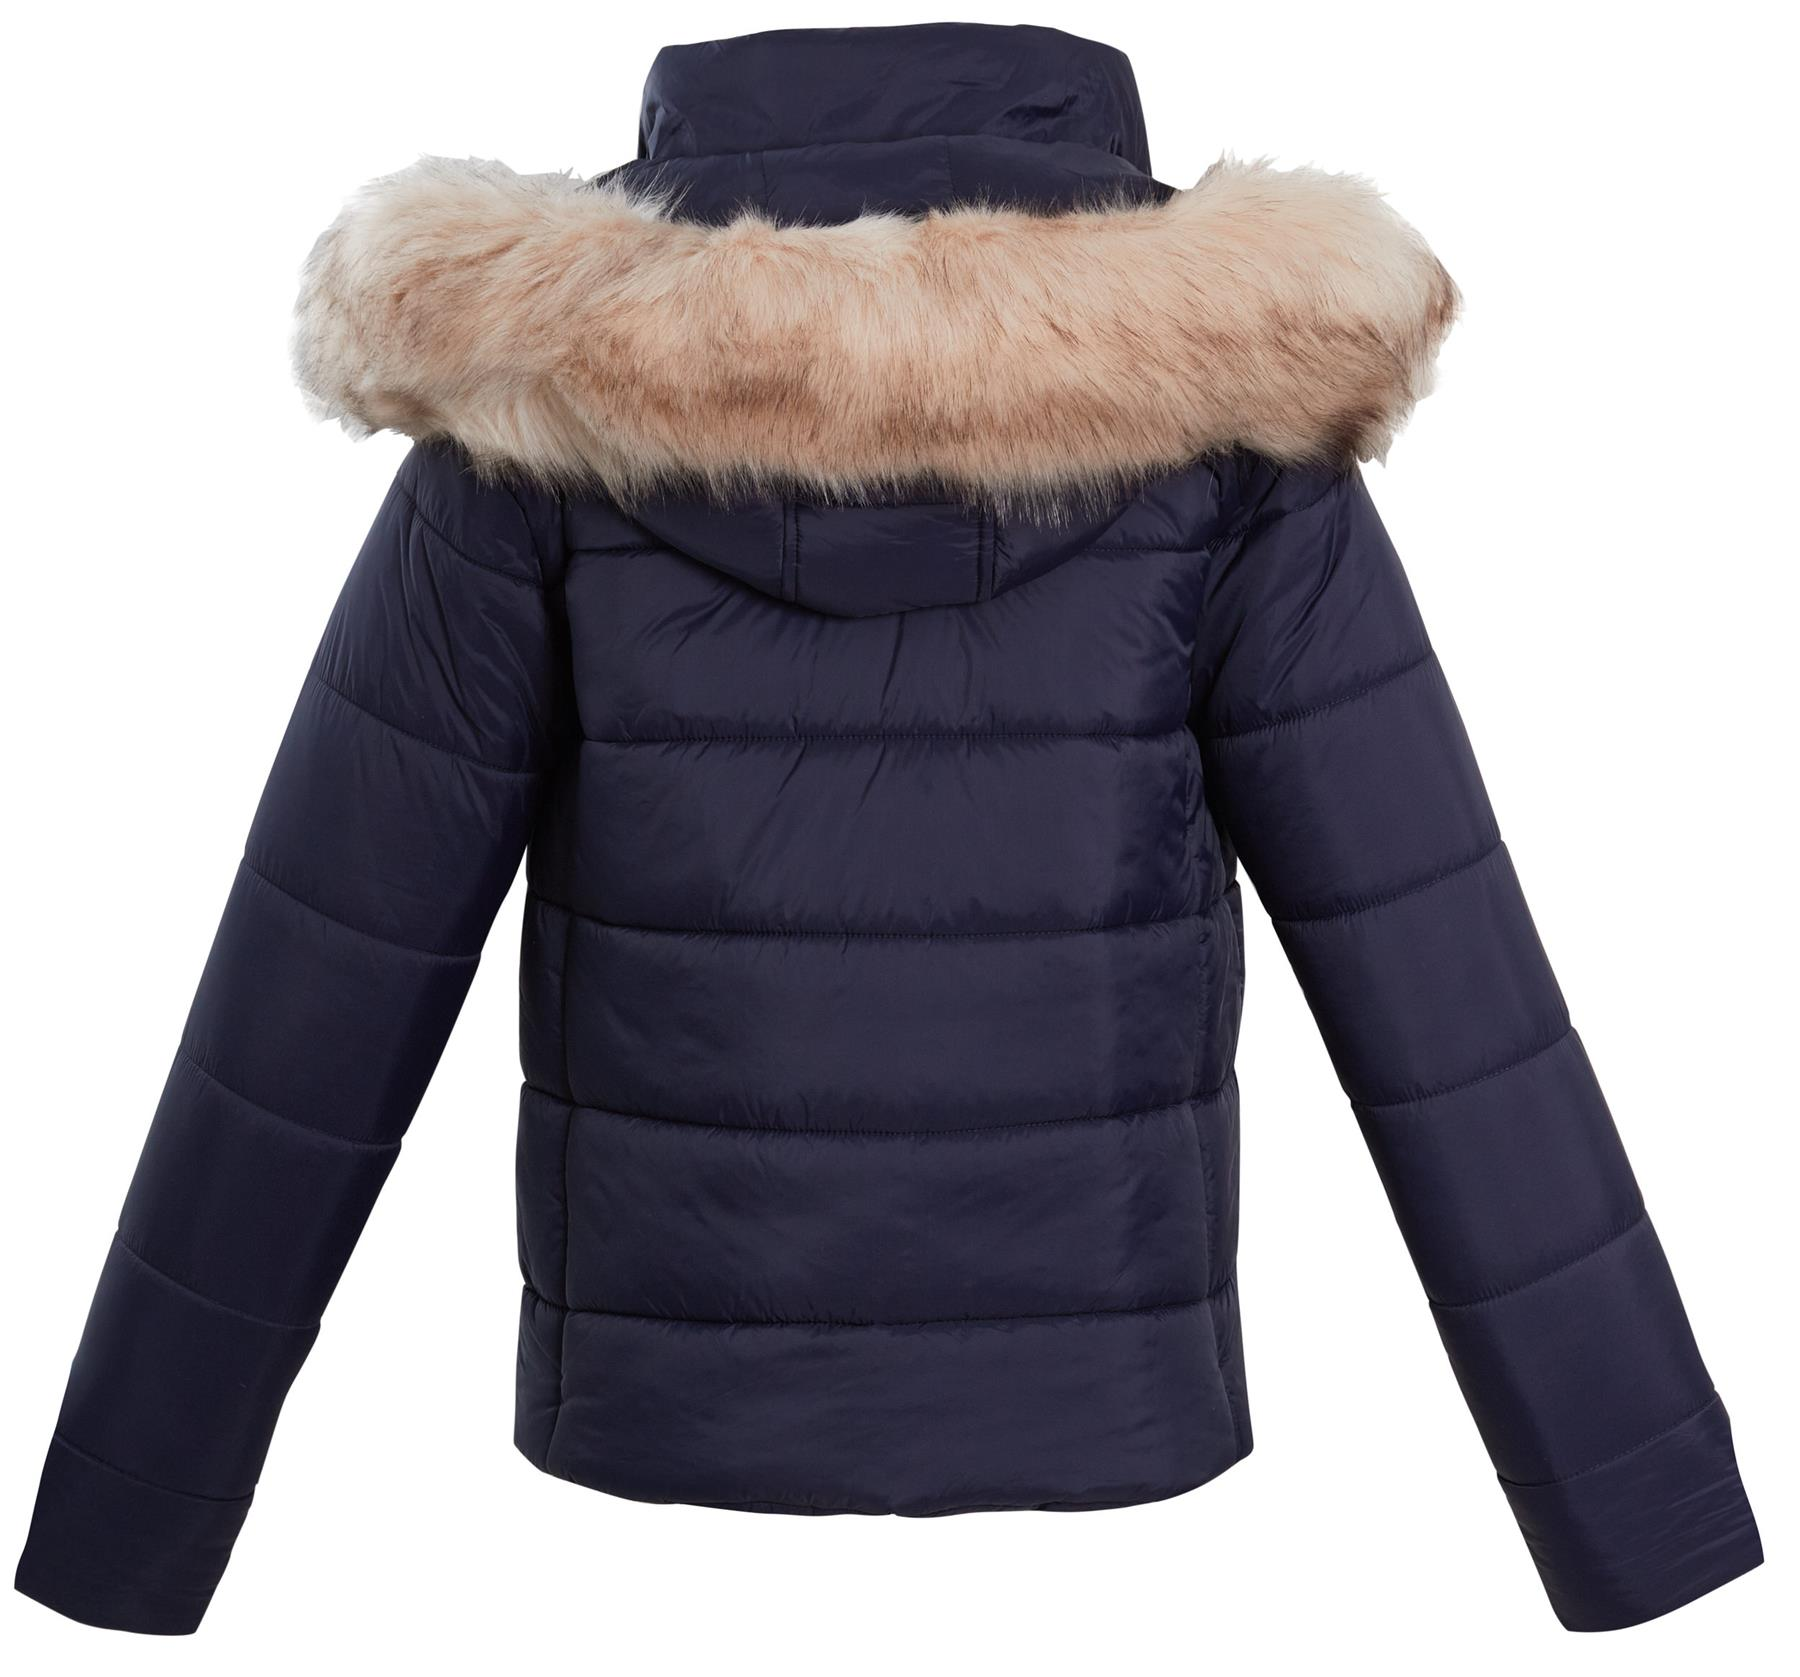 shelikes Womens Hooded Quilted Winter Coat Sizes UK 8 10 12 14 16